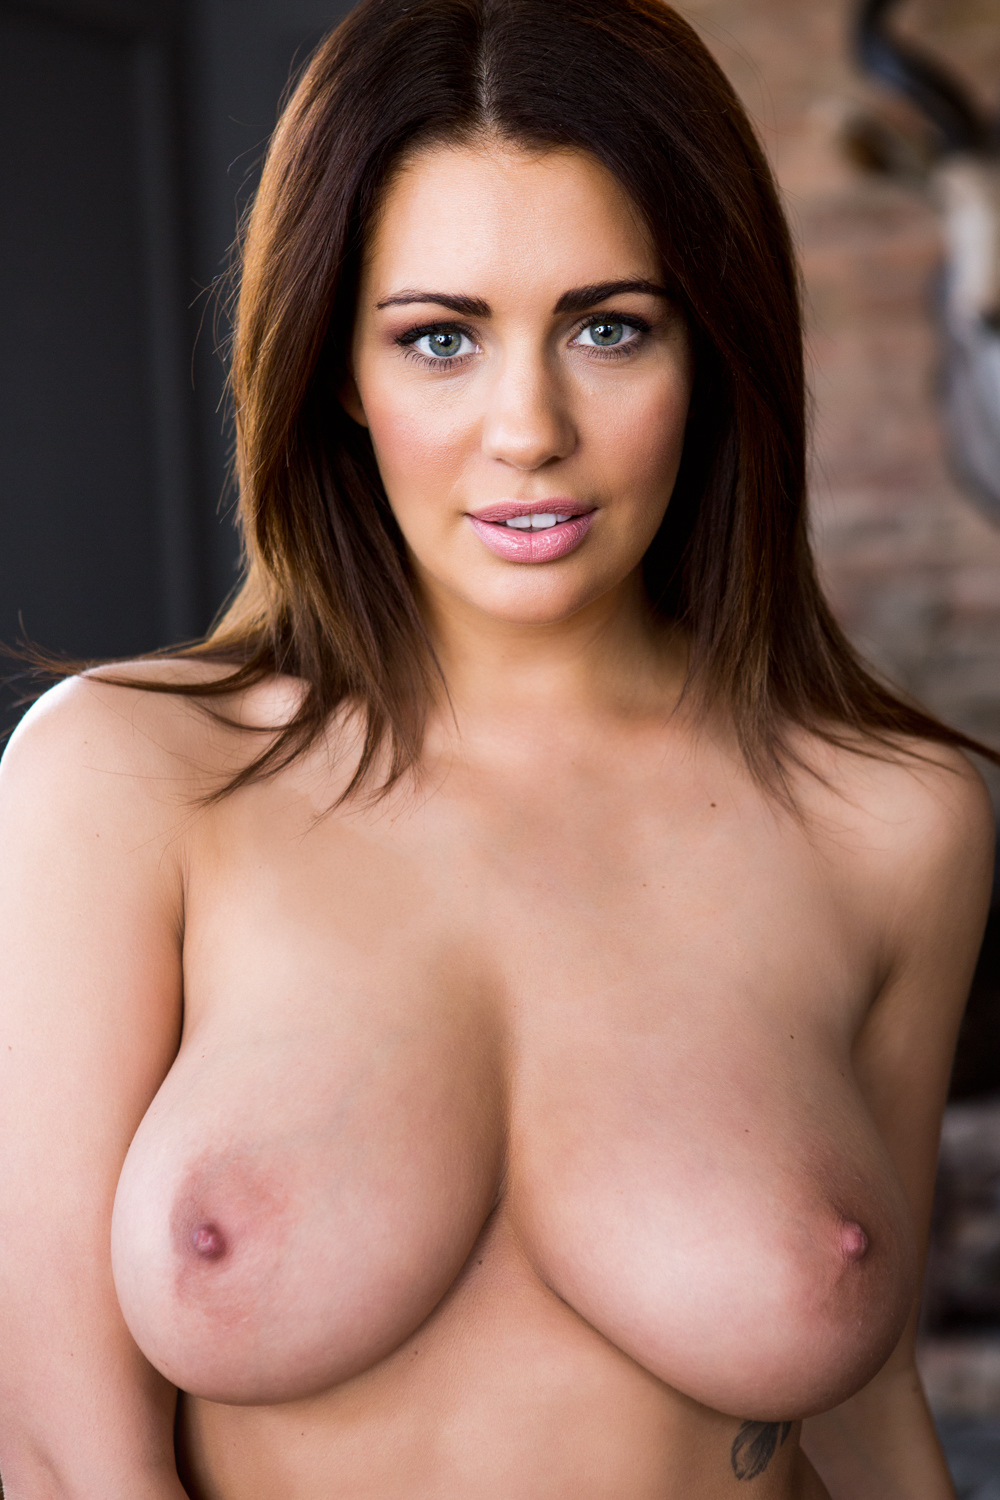 Areola big brown nipples